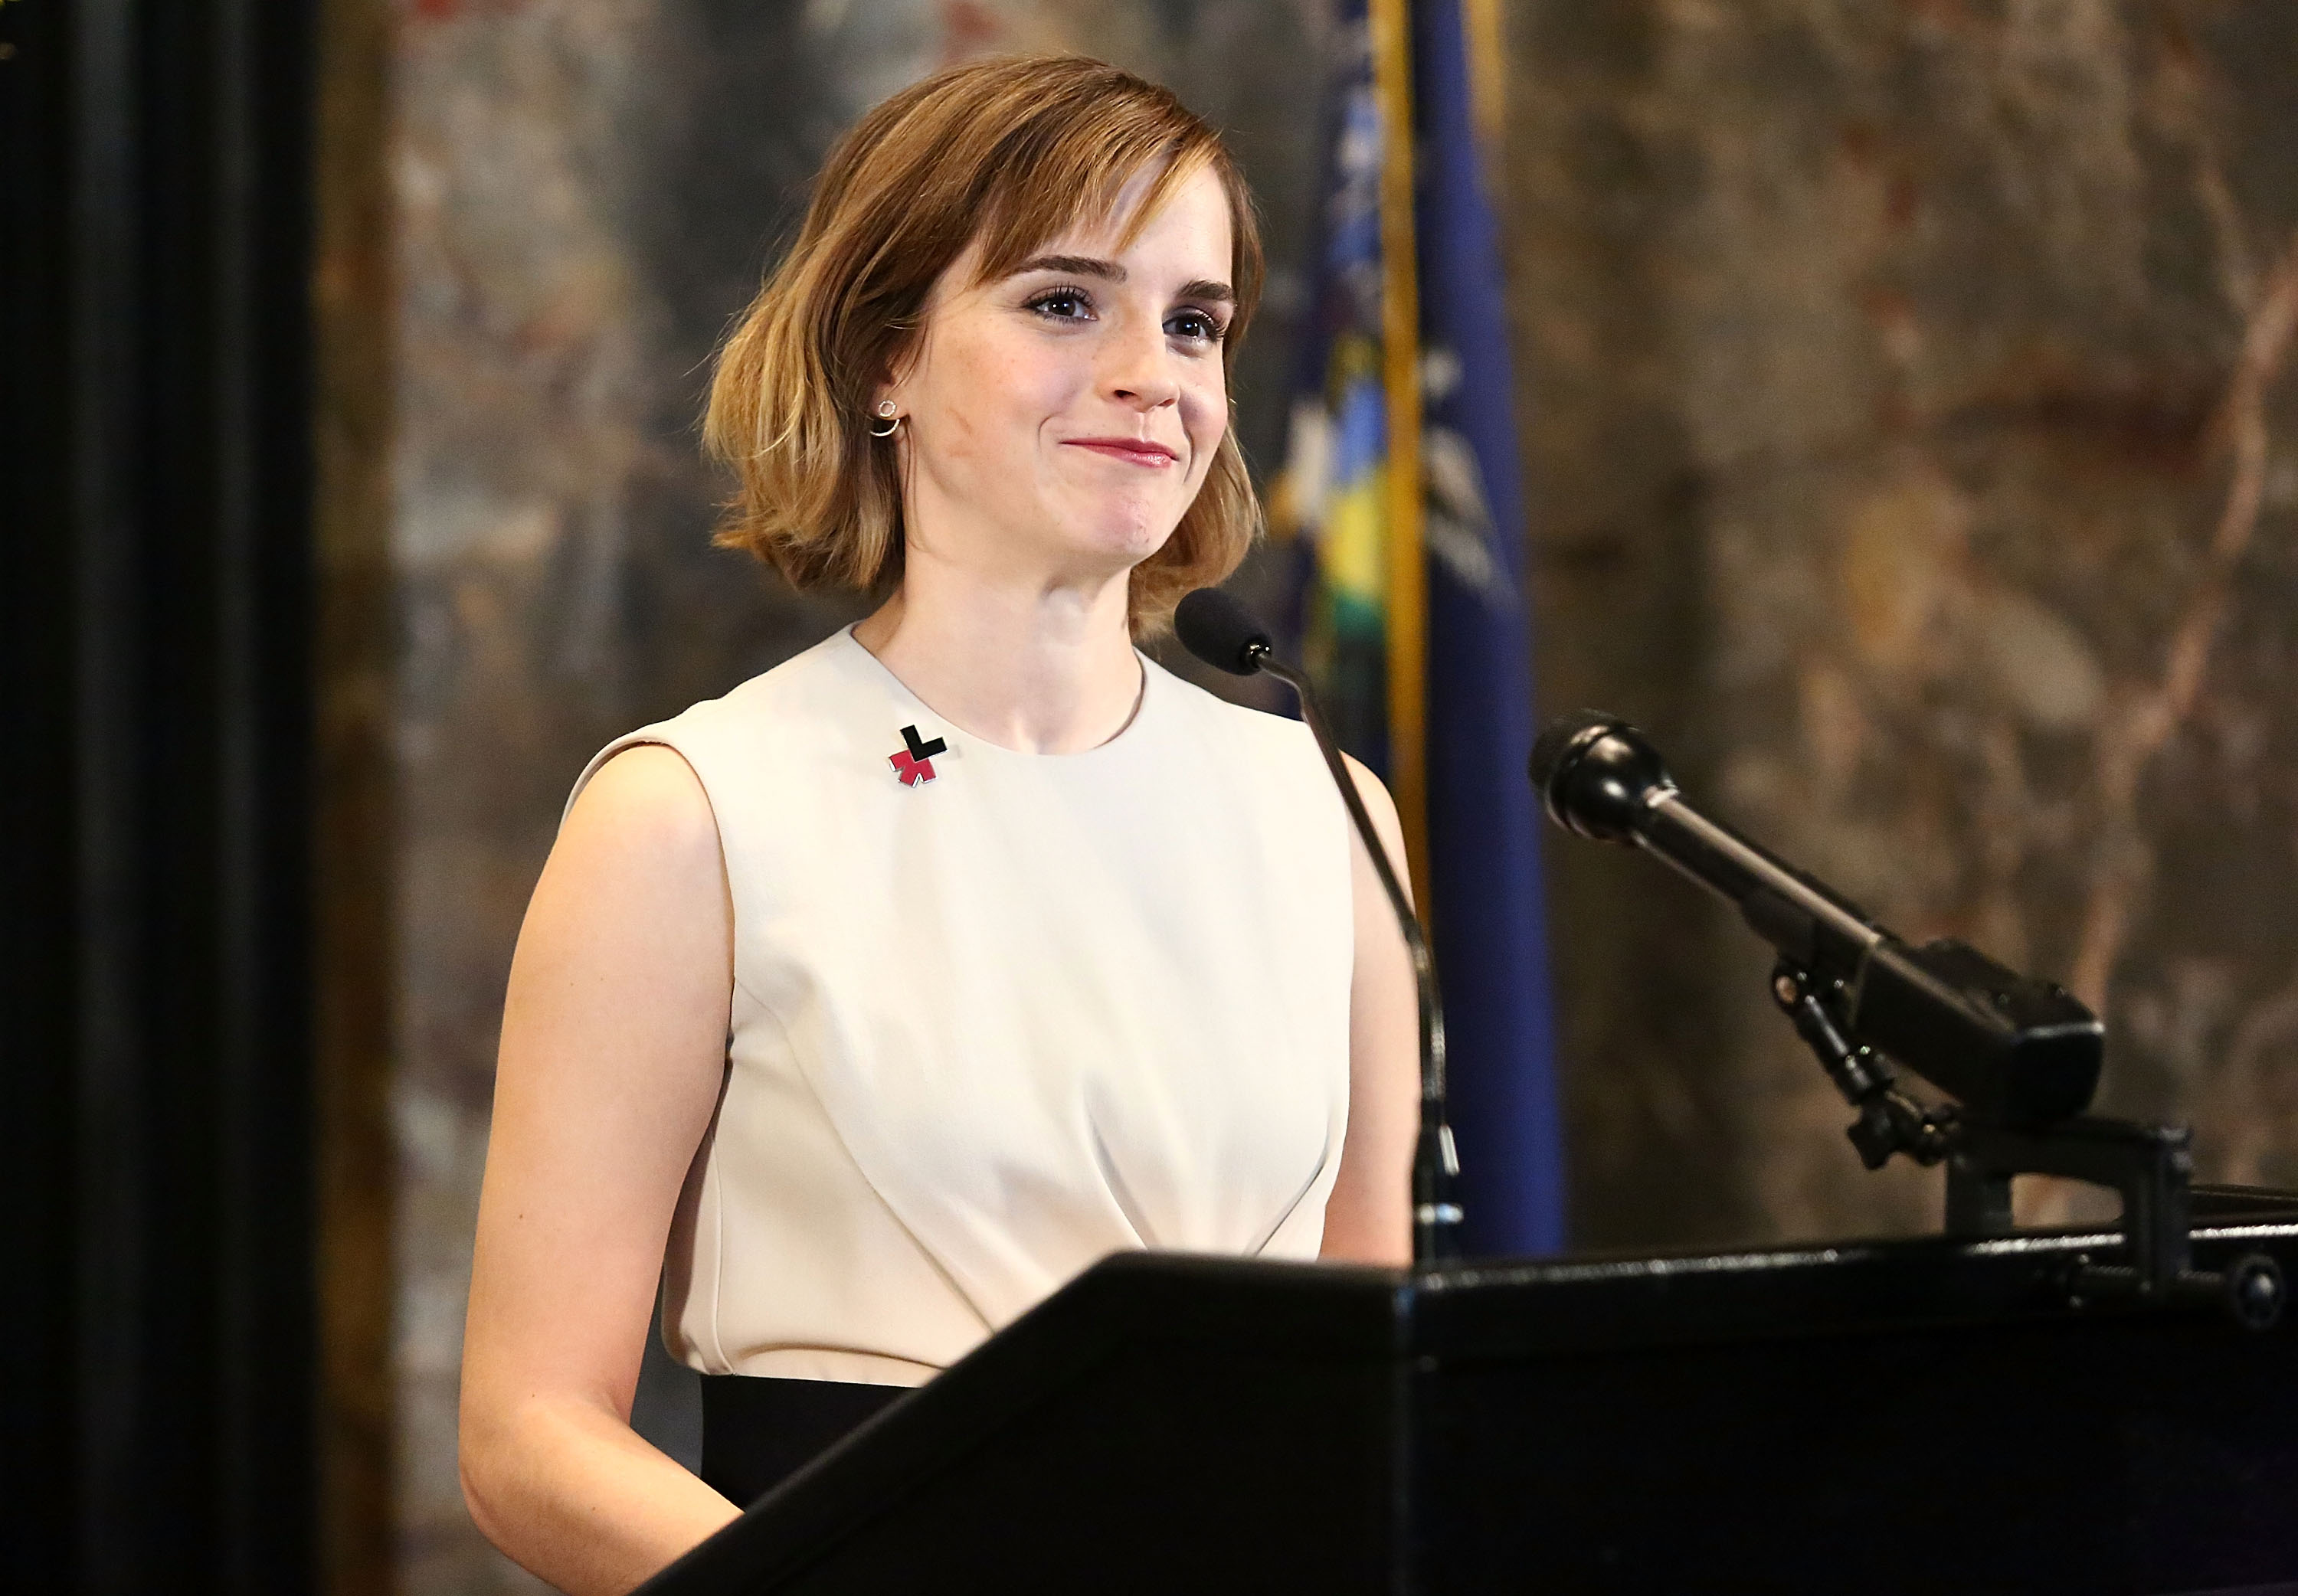 Emma Watson speaks during HeForShe Magenta For International Women's Day at The Empire State Building, in New York City, on March 8, 2016.